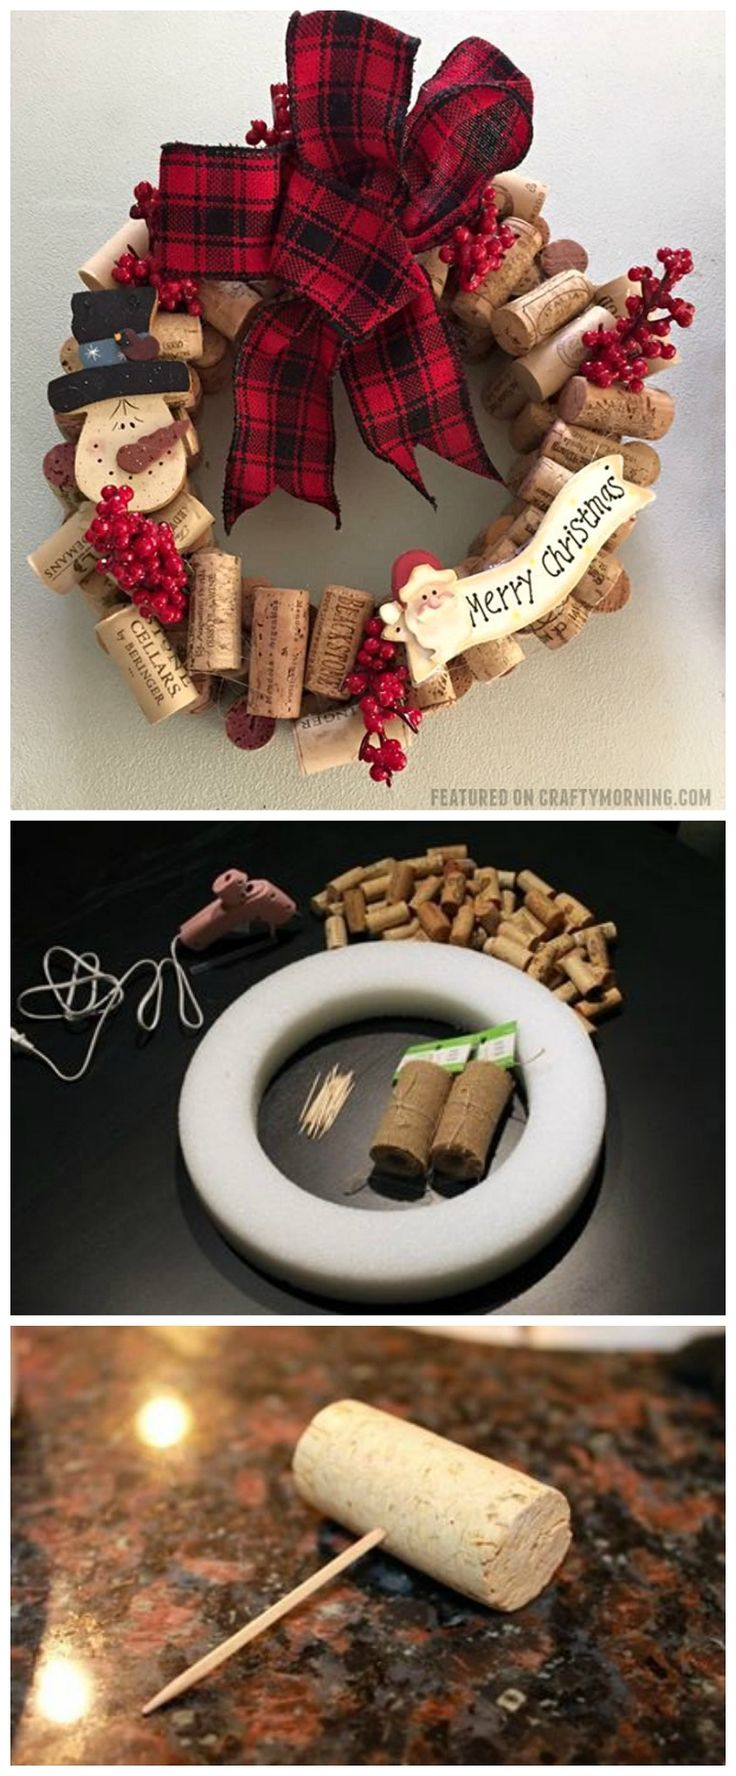 Craft ideas with corks - Wine Cork Christmas Wreath Craft